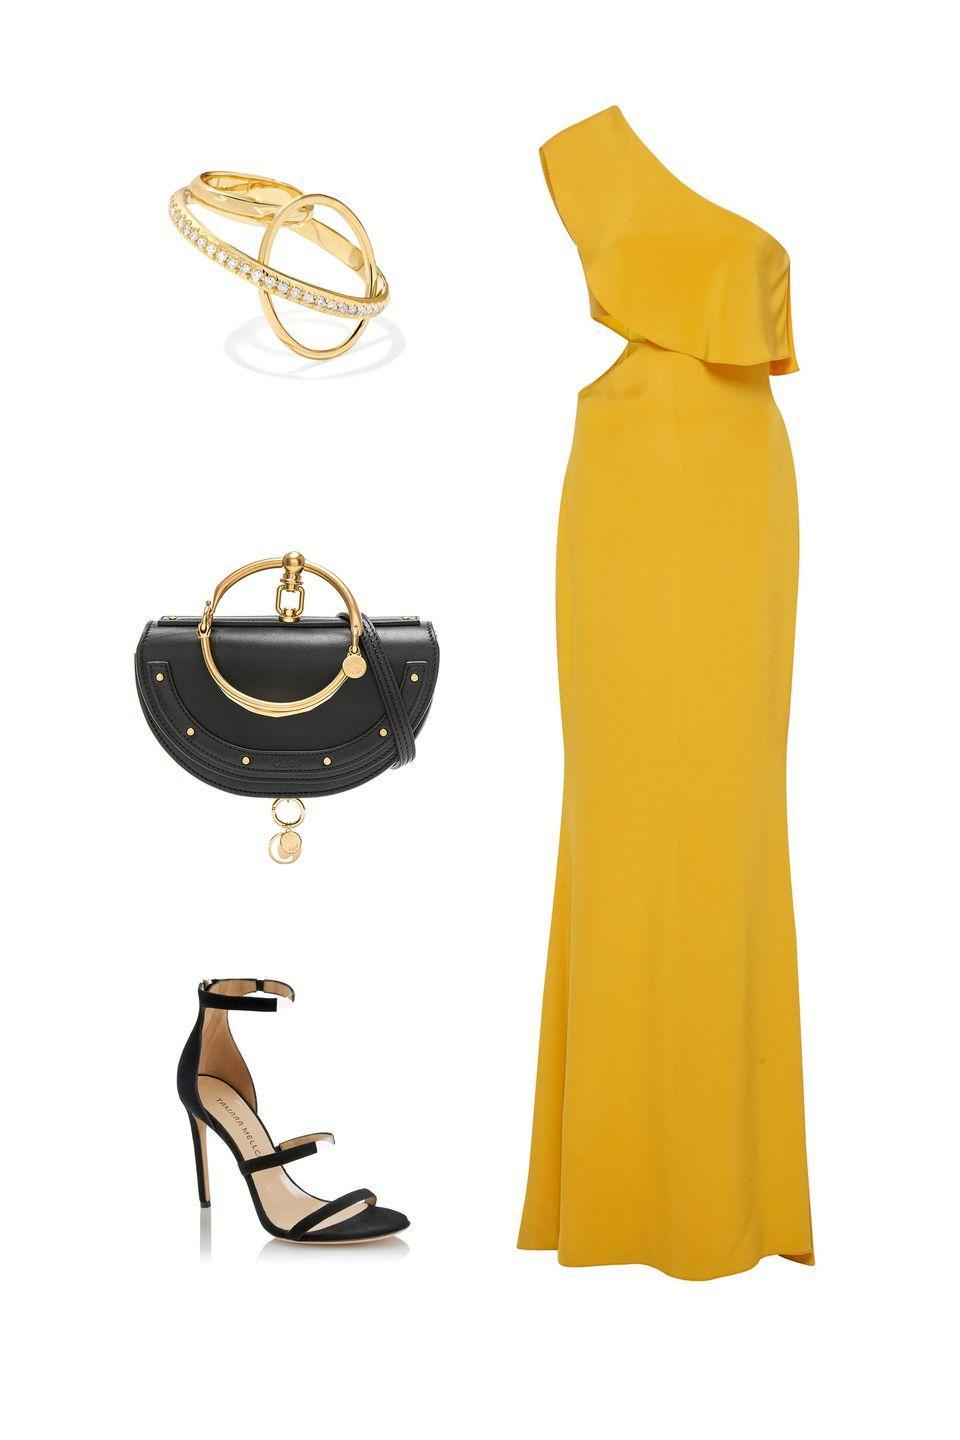 """<p>Tap into this fall season's trendiest hue–and accessorize it with your favorite: jet black–for a color palette that feels both in-season and effortlessly forward-thinking.</p><p><em><strong>Cushnie et Och</strong> dress, $1,995, <a rel=""""nofollow noopener"""" href=""""https://www.modaoperandi.com/cushnie-et-ochs-pf18/bea-ruffled-one-shoulder-silk-crepe-gown"""" target=""""_blank"""" data-ylk=""""slk:modaoperandi.com"""" class=""""link rapid-noclick-resp"""">modaoperandi.com</a>; <strong>Tamara Mellon </strong>heels, $395, <a rel=""""nofollow noopener"""" href=""""https://www.tamaramellon.com/collections/sandals/products/reverse-frontline-105mm-suede-pvc?variant=42715762325&utm_source=affiliate&utm_medium=Linkshare&utm_campaign=affl&affiliate_id=TnL5HPStwNw&siteID=TnL5HPStwNw-PdRkV04ZiAJCnJOdYV2Xaw&utm_source=linkshare&utm_medium=affiliate&utm_term=10&utm_content=1&utm_campaign=Skimlinks.com"""" target=""""_blank"""" data-ylk=""""slk:tamaramellon.com"""" class=""""link rapid-noclick-resp"""">tamaramellon.com</a>; <strong>Chloé </strong>minaudiere, $1,490, <a rel=""""nofollow noopener"""" href=""""https://www.fwrd.com/product-chloe-small-nile-leather-minaudiere-in-black/CLOE-WY328/?d=Womens&itrownum=7&itcurrpage=1&itview=01"""" target=""""_blank"""" data-ylk=""""slk:frwd.com"""" class=""""link rapid-noclick-resp"""">frwd.com</a>;<strong> Gaelle Khouri</strong> diamond ring, $3,050, <a rel=""""nofollow noopener"""" href=""""https://www.net-a-porter.com/us/en/product/1076832/gaelle_khouri/dianoia-18-karat-gold-diamond-ring?cm_mmc=LinkshareUS-_-6Km1lFswsiY-_-Custom-_-LinkBuilder&siteID=6Km1lFswsiY-jcRAjaTIUO106dHNoqA0Xg&ShopBAZAAR=ShopBAZAAR"""" target=""""_blank"""" data-ylk=""""slk:shopBAZAAR.com"""" class=""""link rapid-noclick-resp"""">shopBAZAAR.com</a>.</em></p>"""